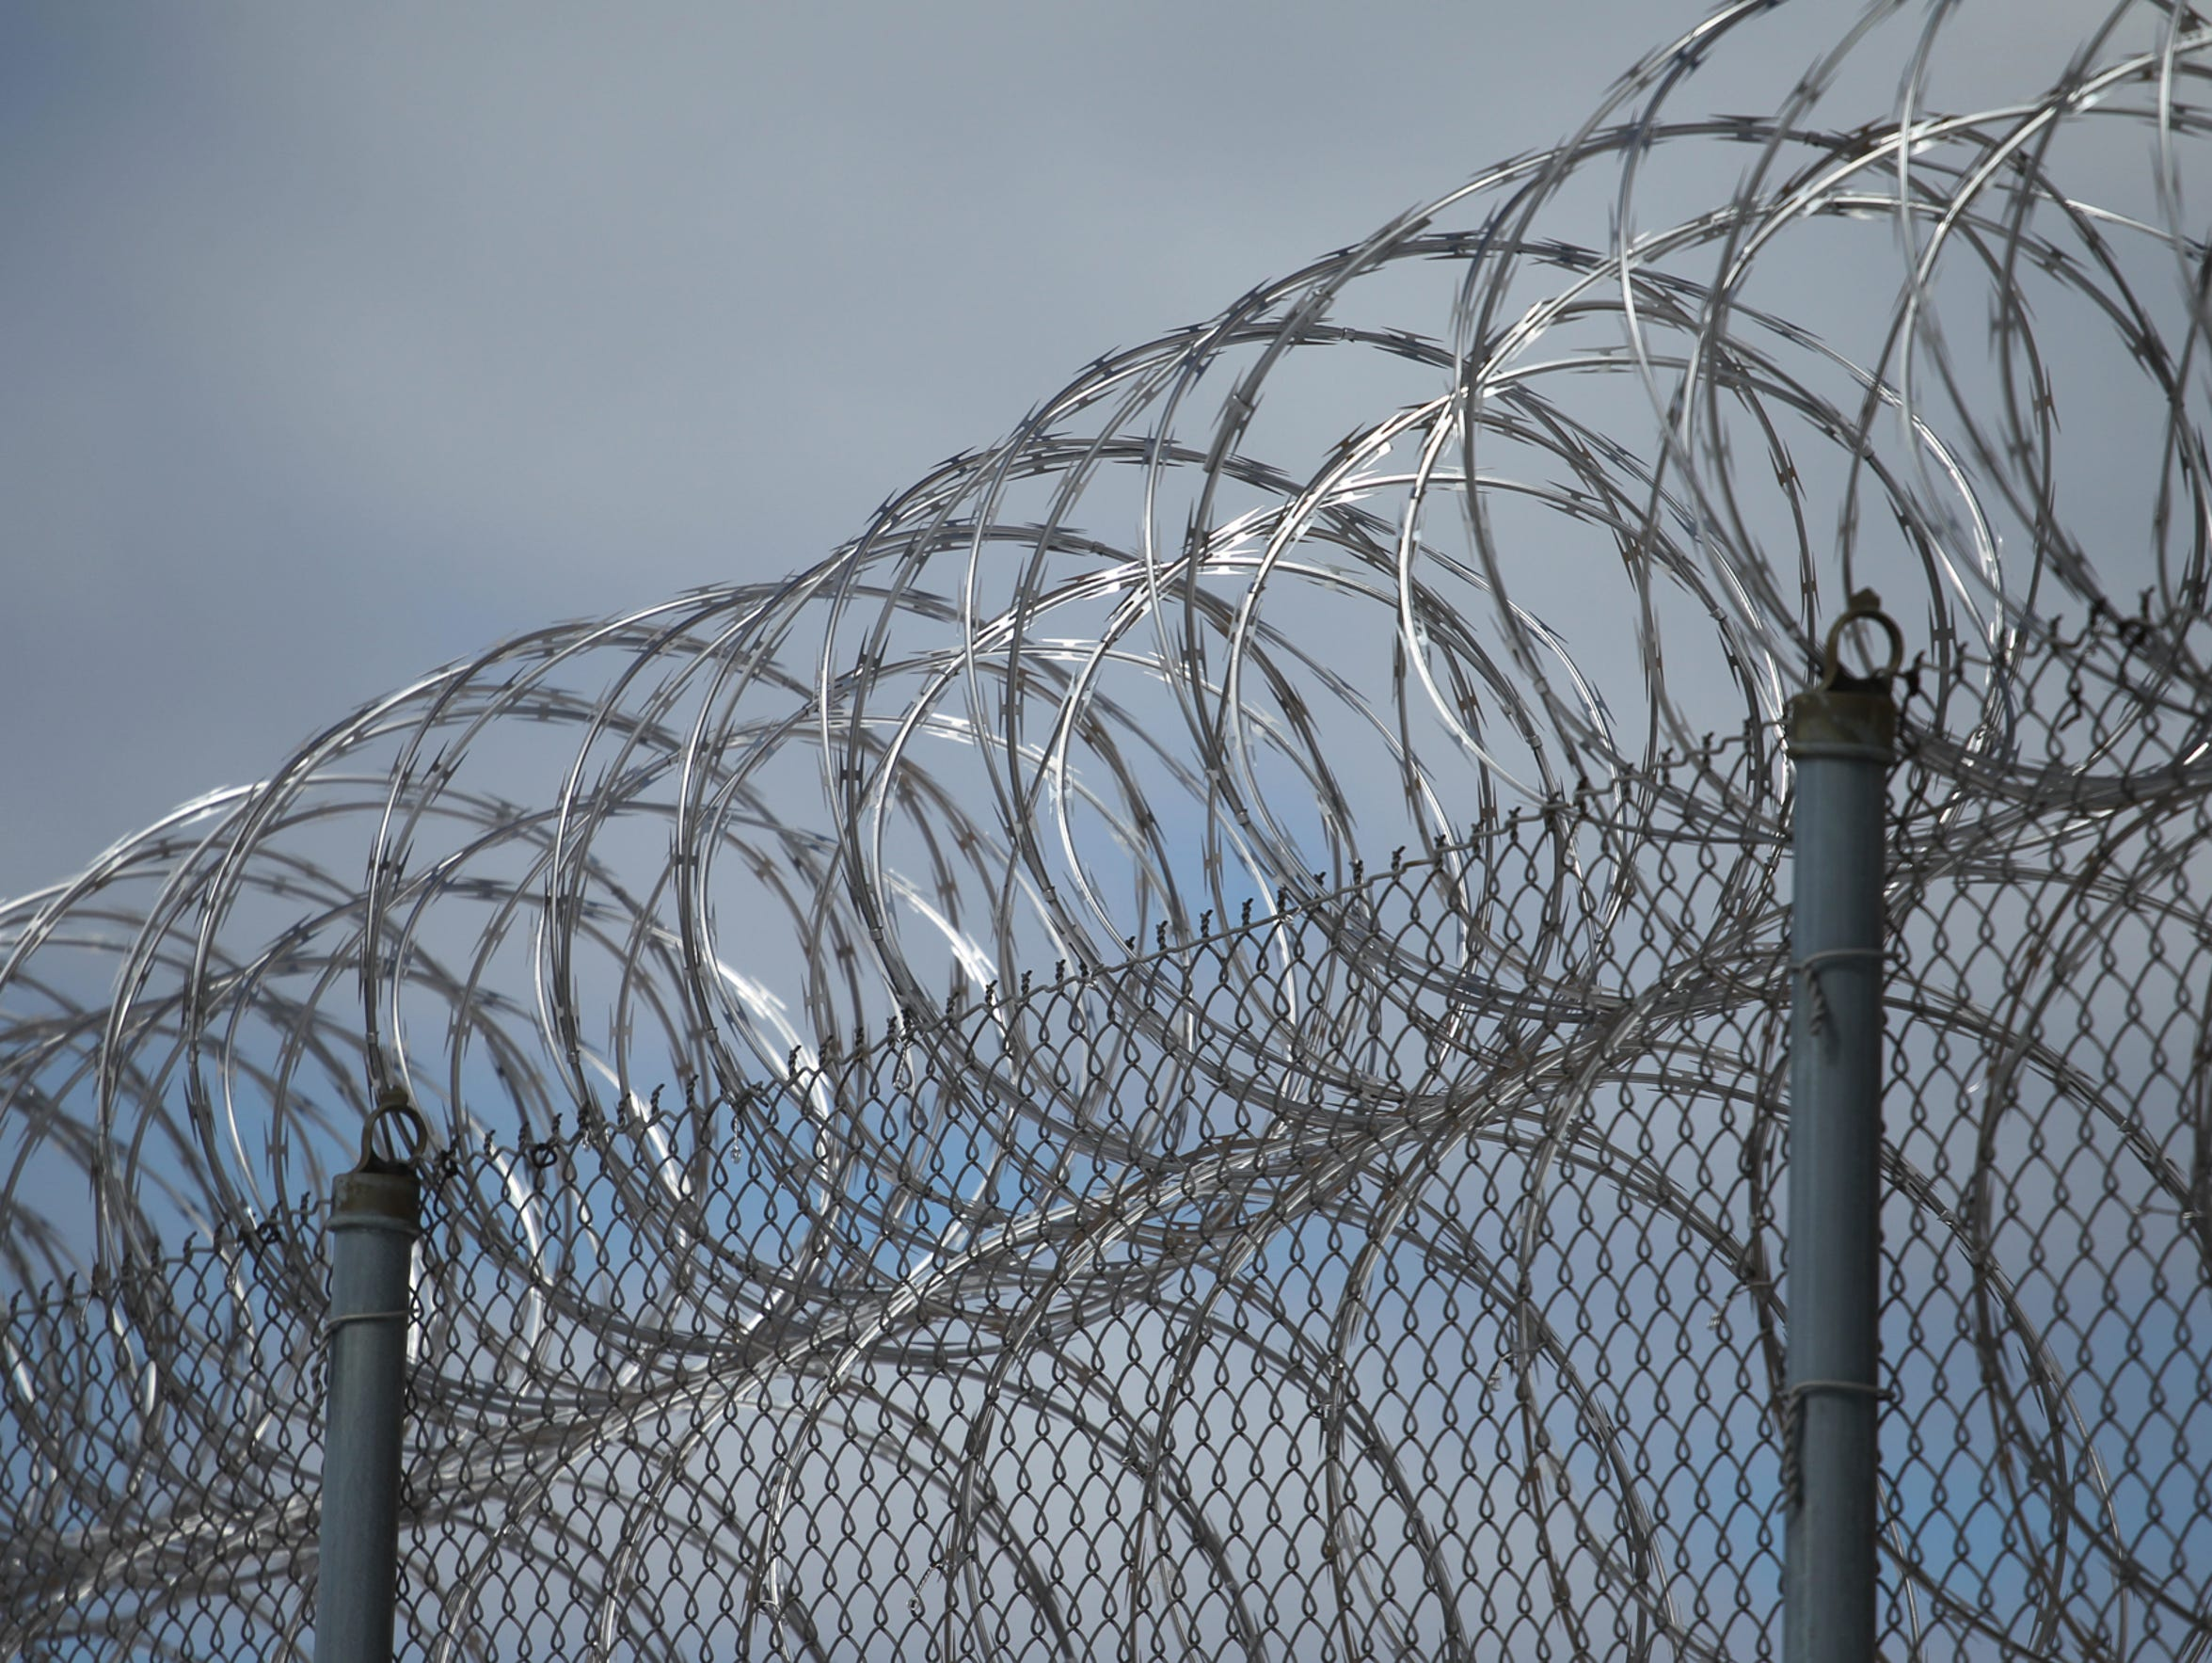 Razor wire tops one of the fences at the Lincoln Hills